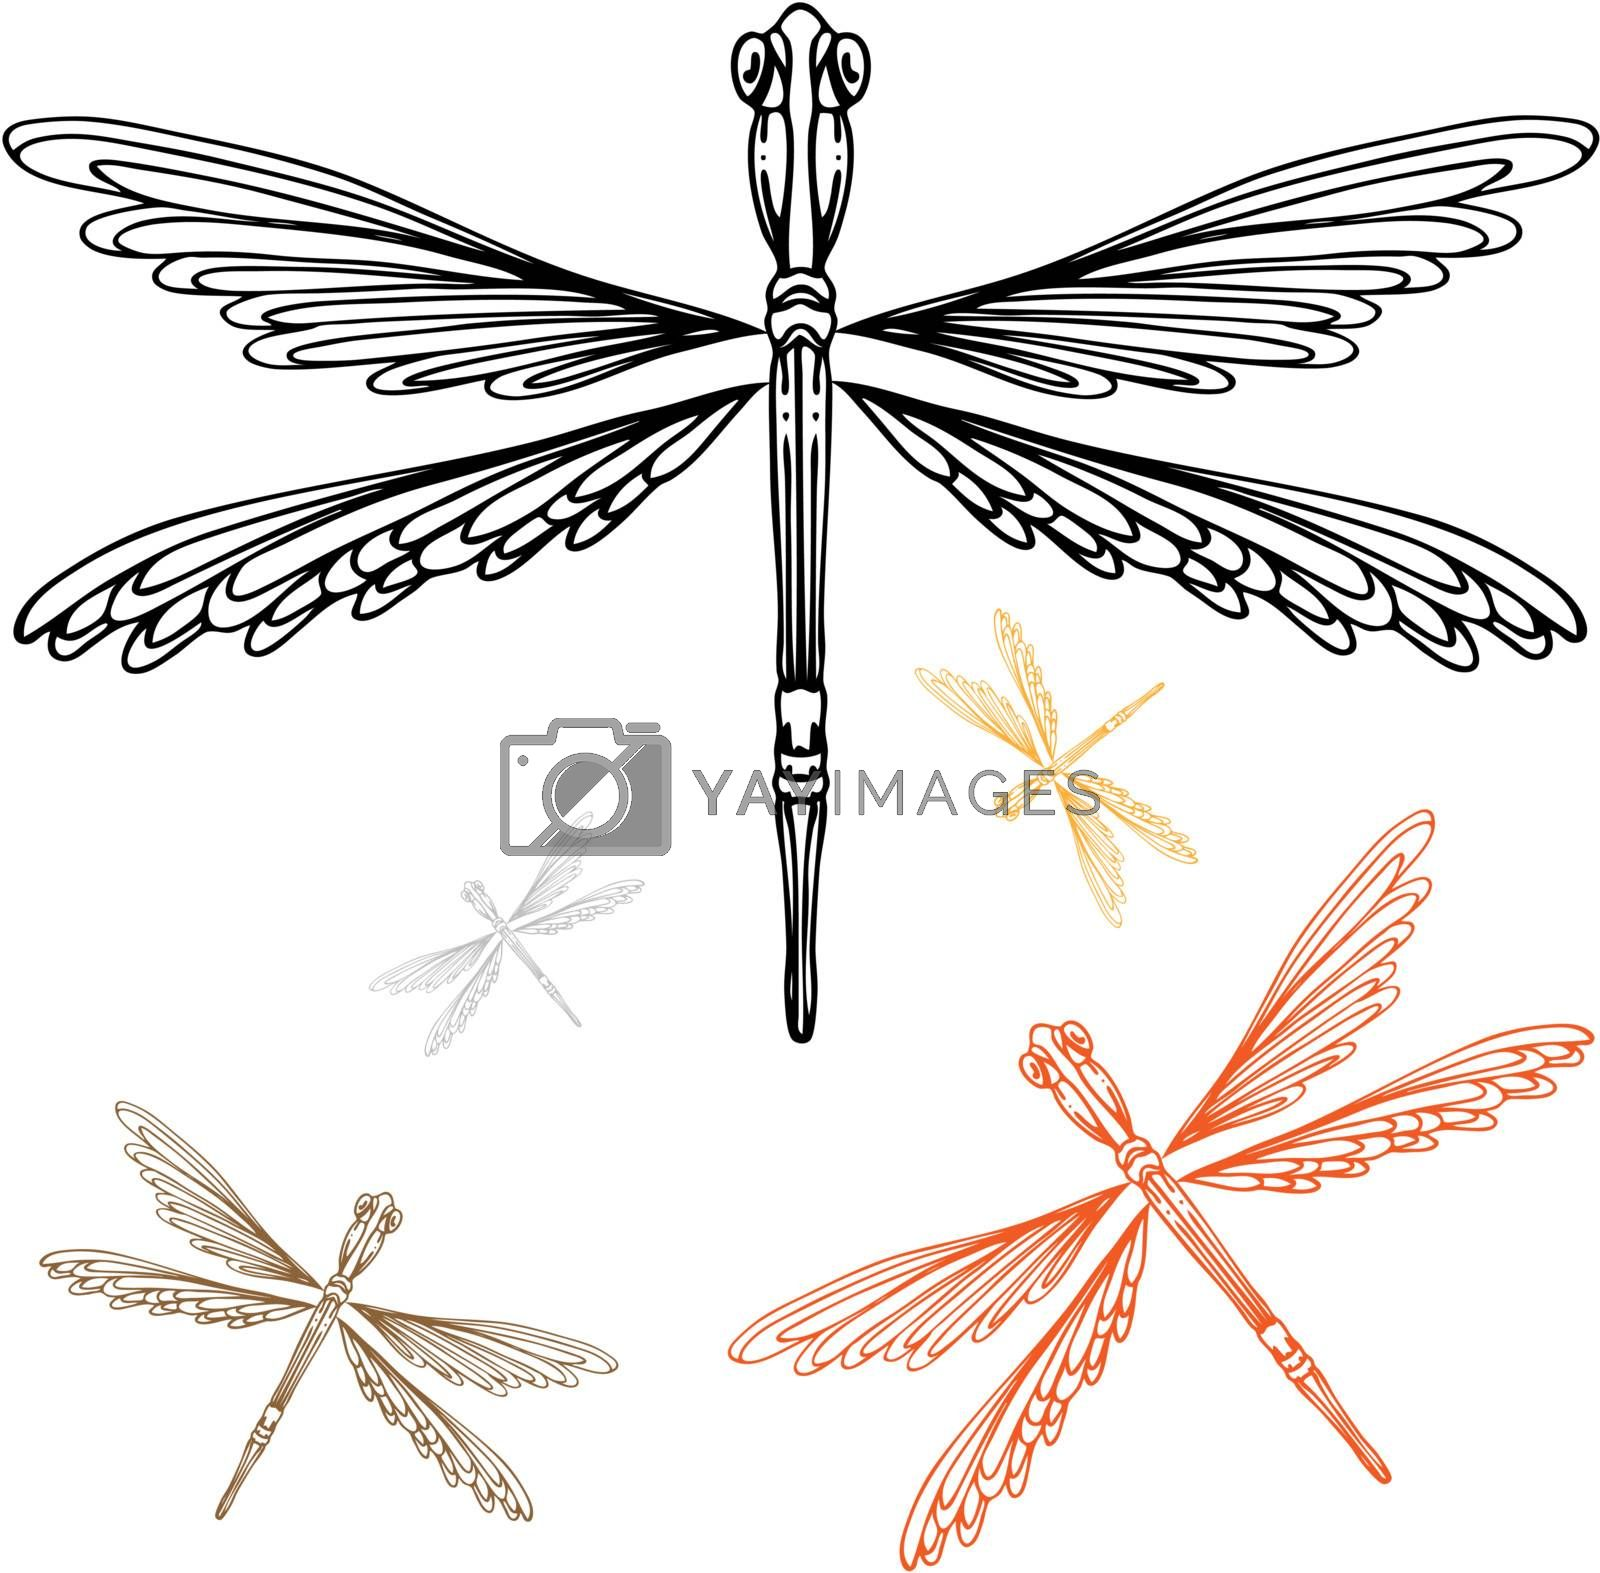 An image of a detailed dragonfly.